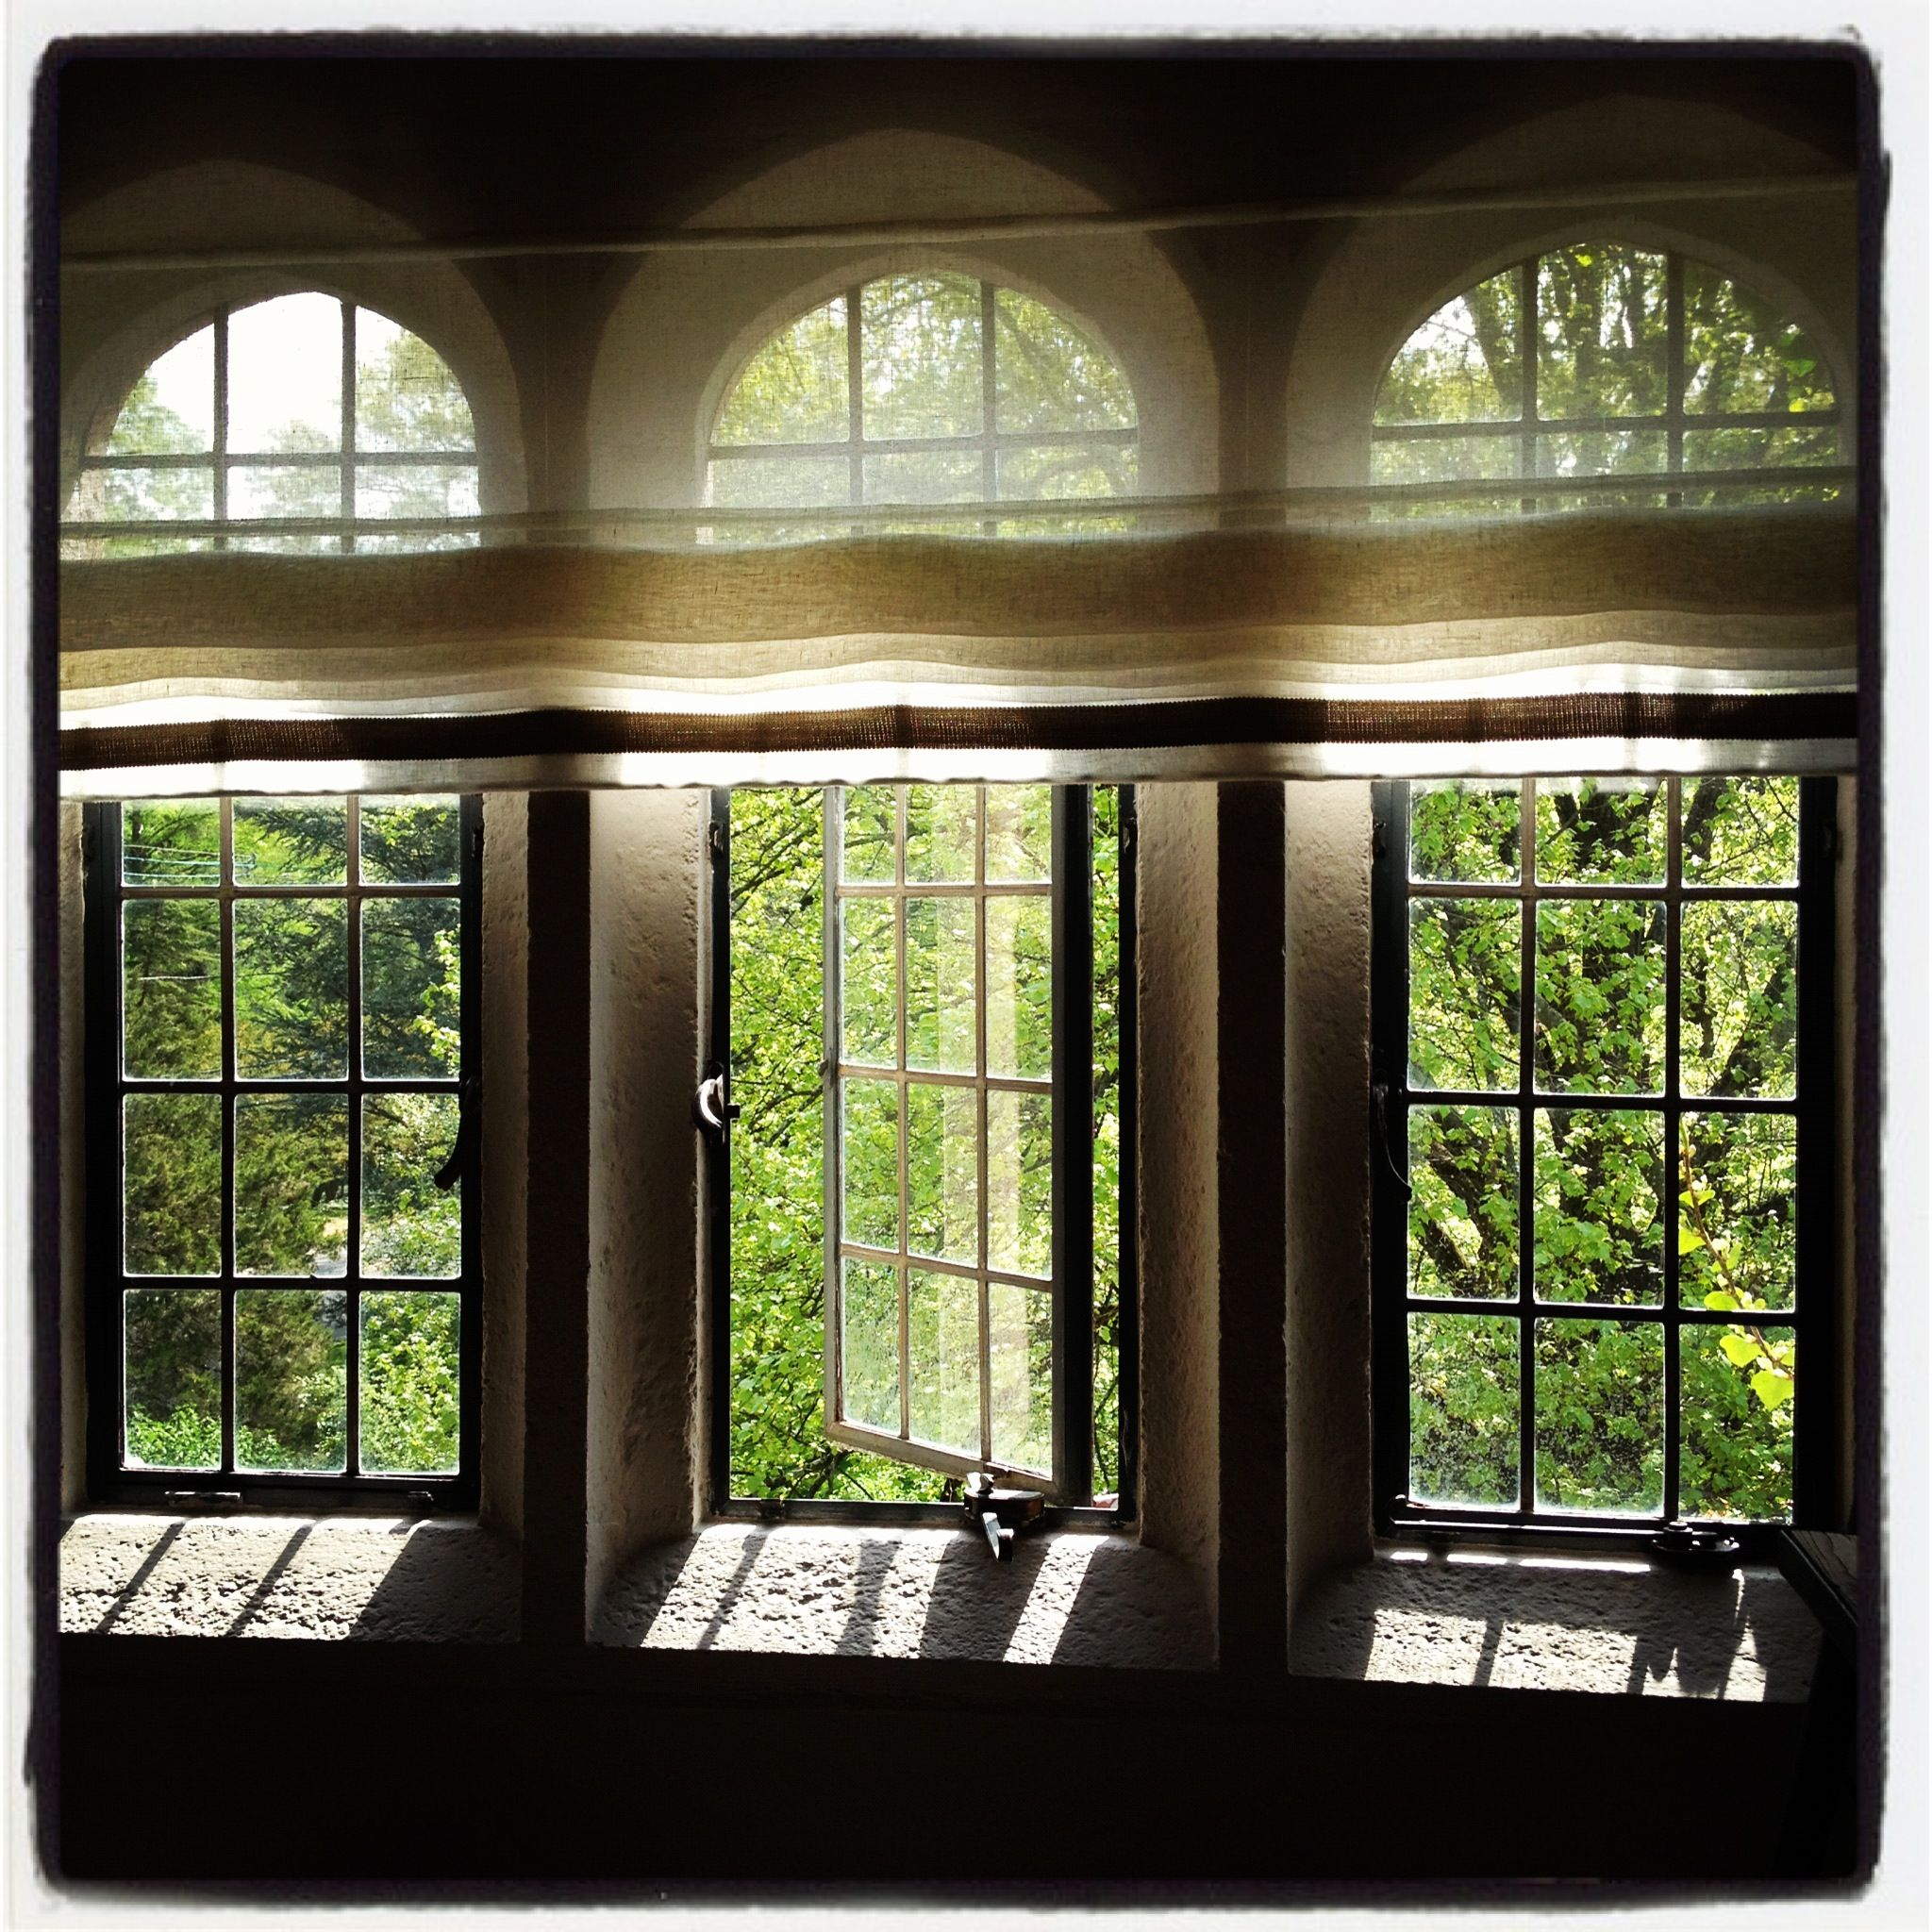 the homes windows were gorgeous as is this window treatment affording a touch of privacy by Emma Korzeniowski.